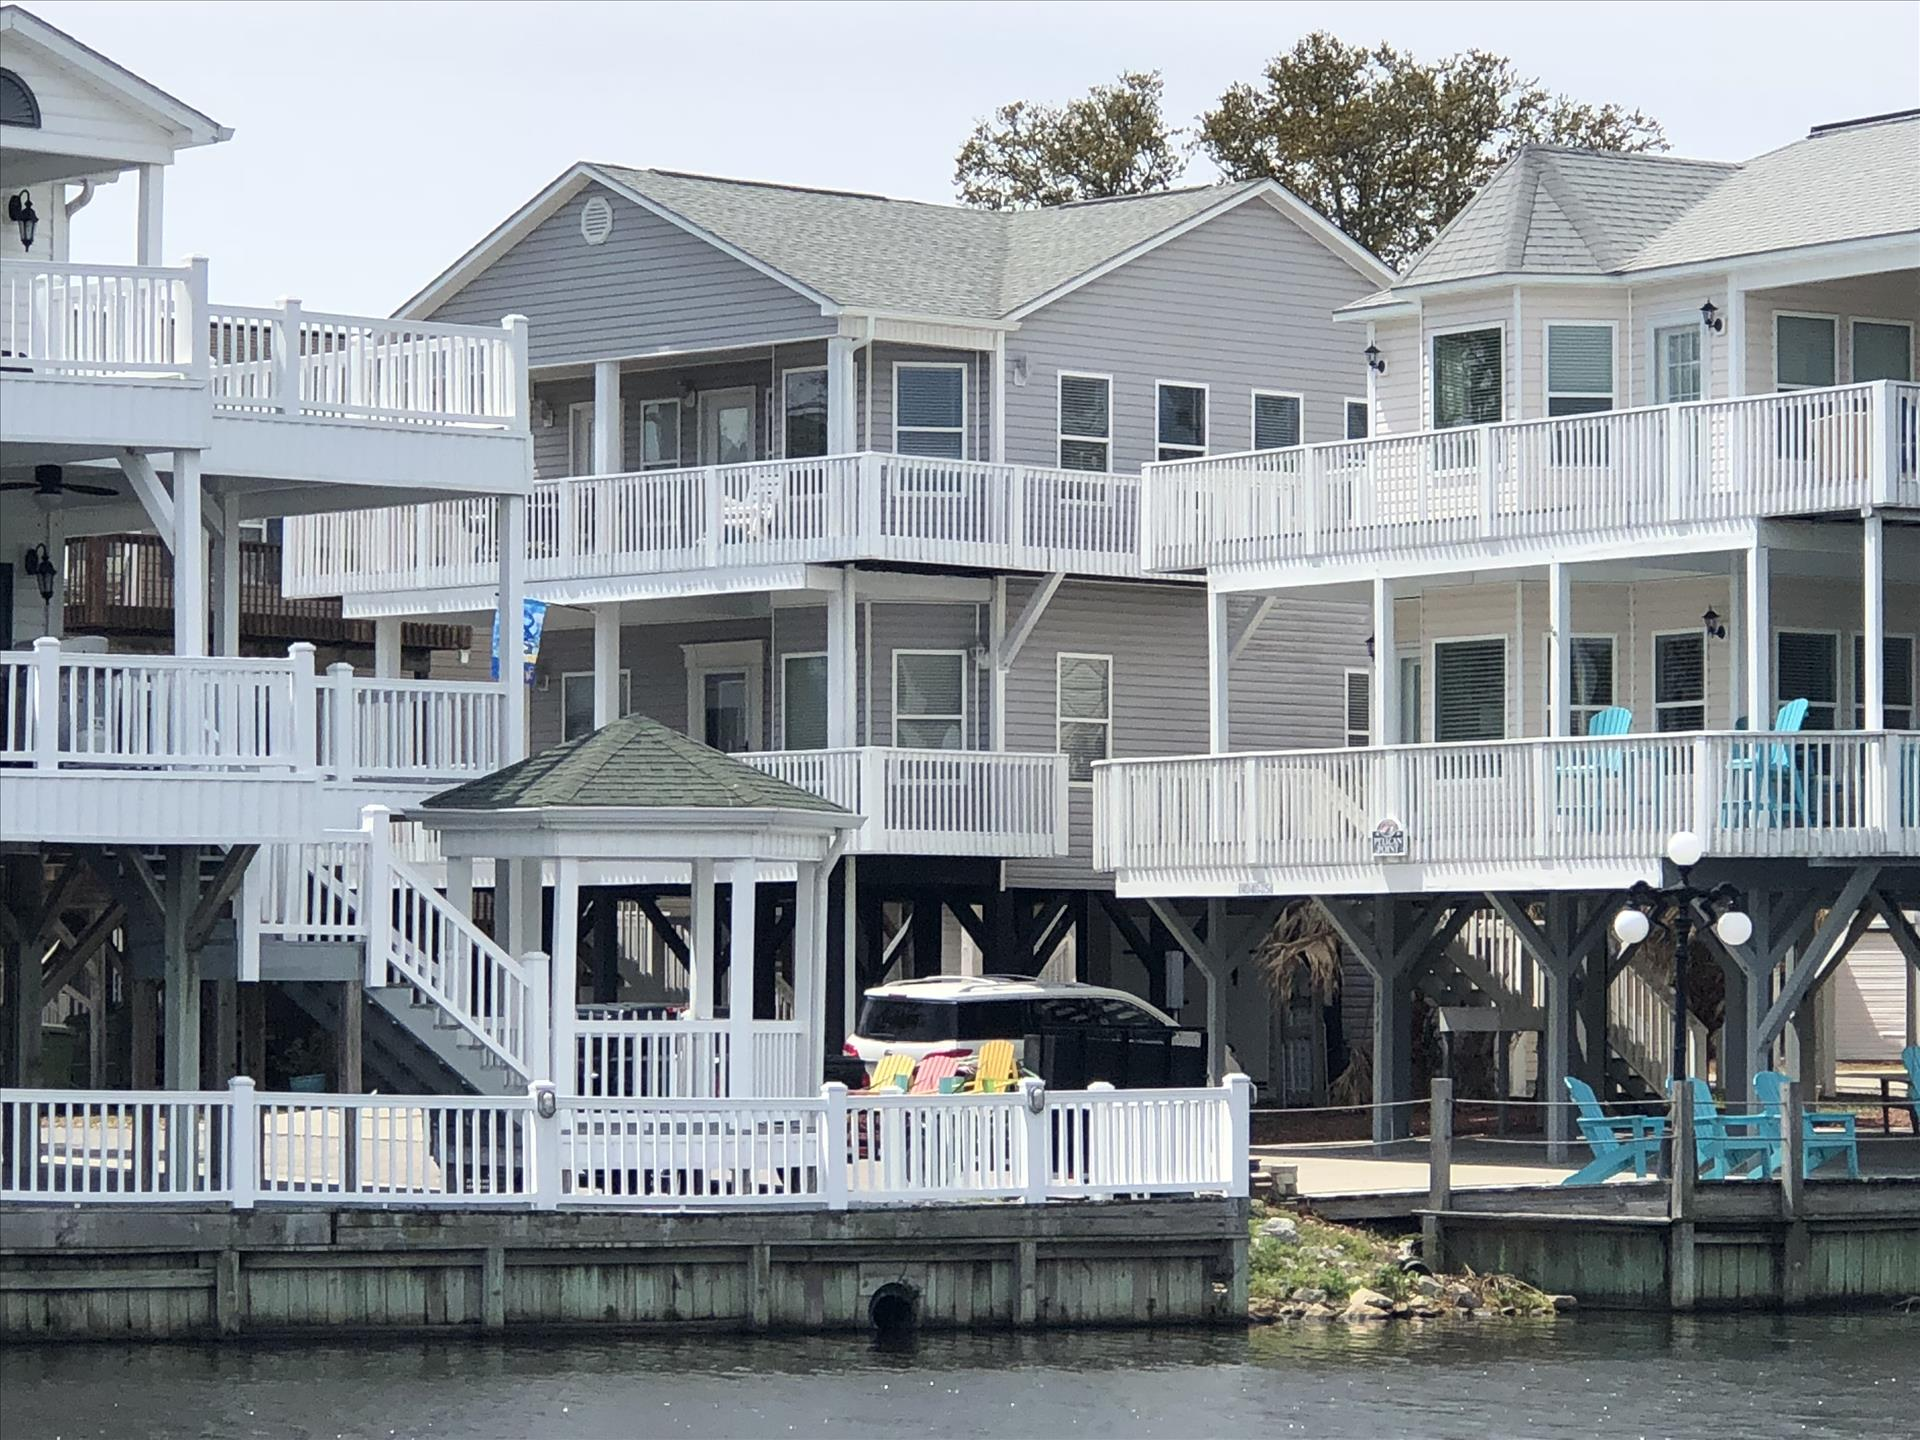 Vacation Rental Homes In Myrtle Beach Sc Scbeachtrip Com